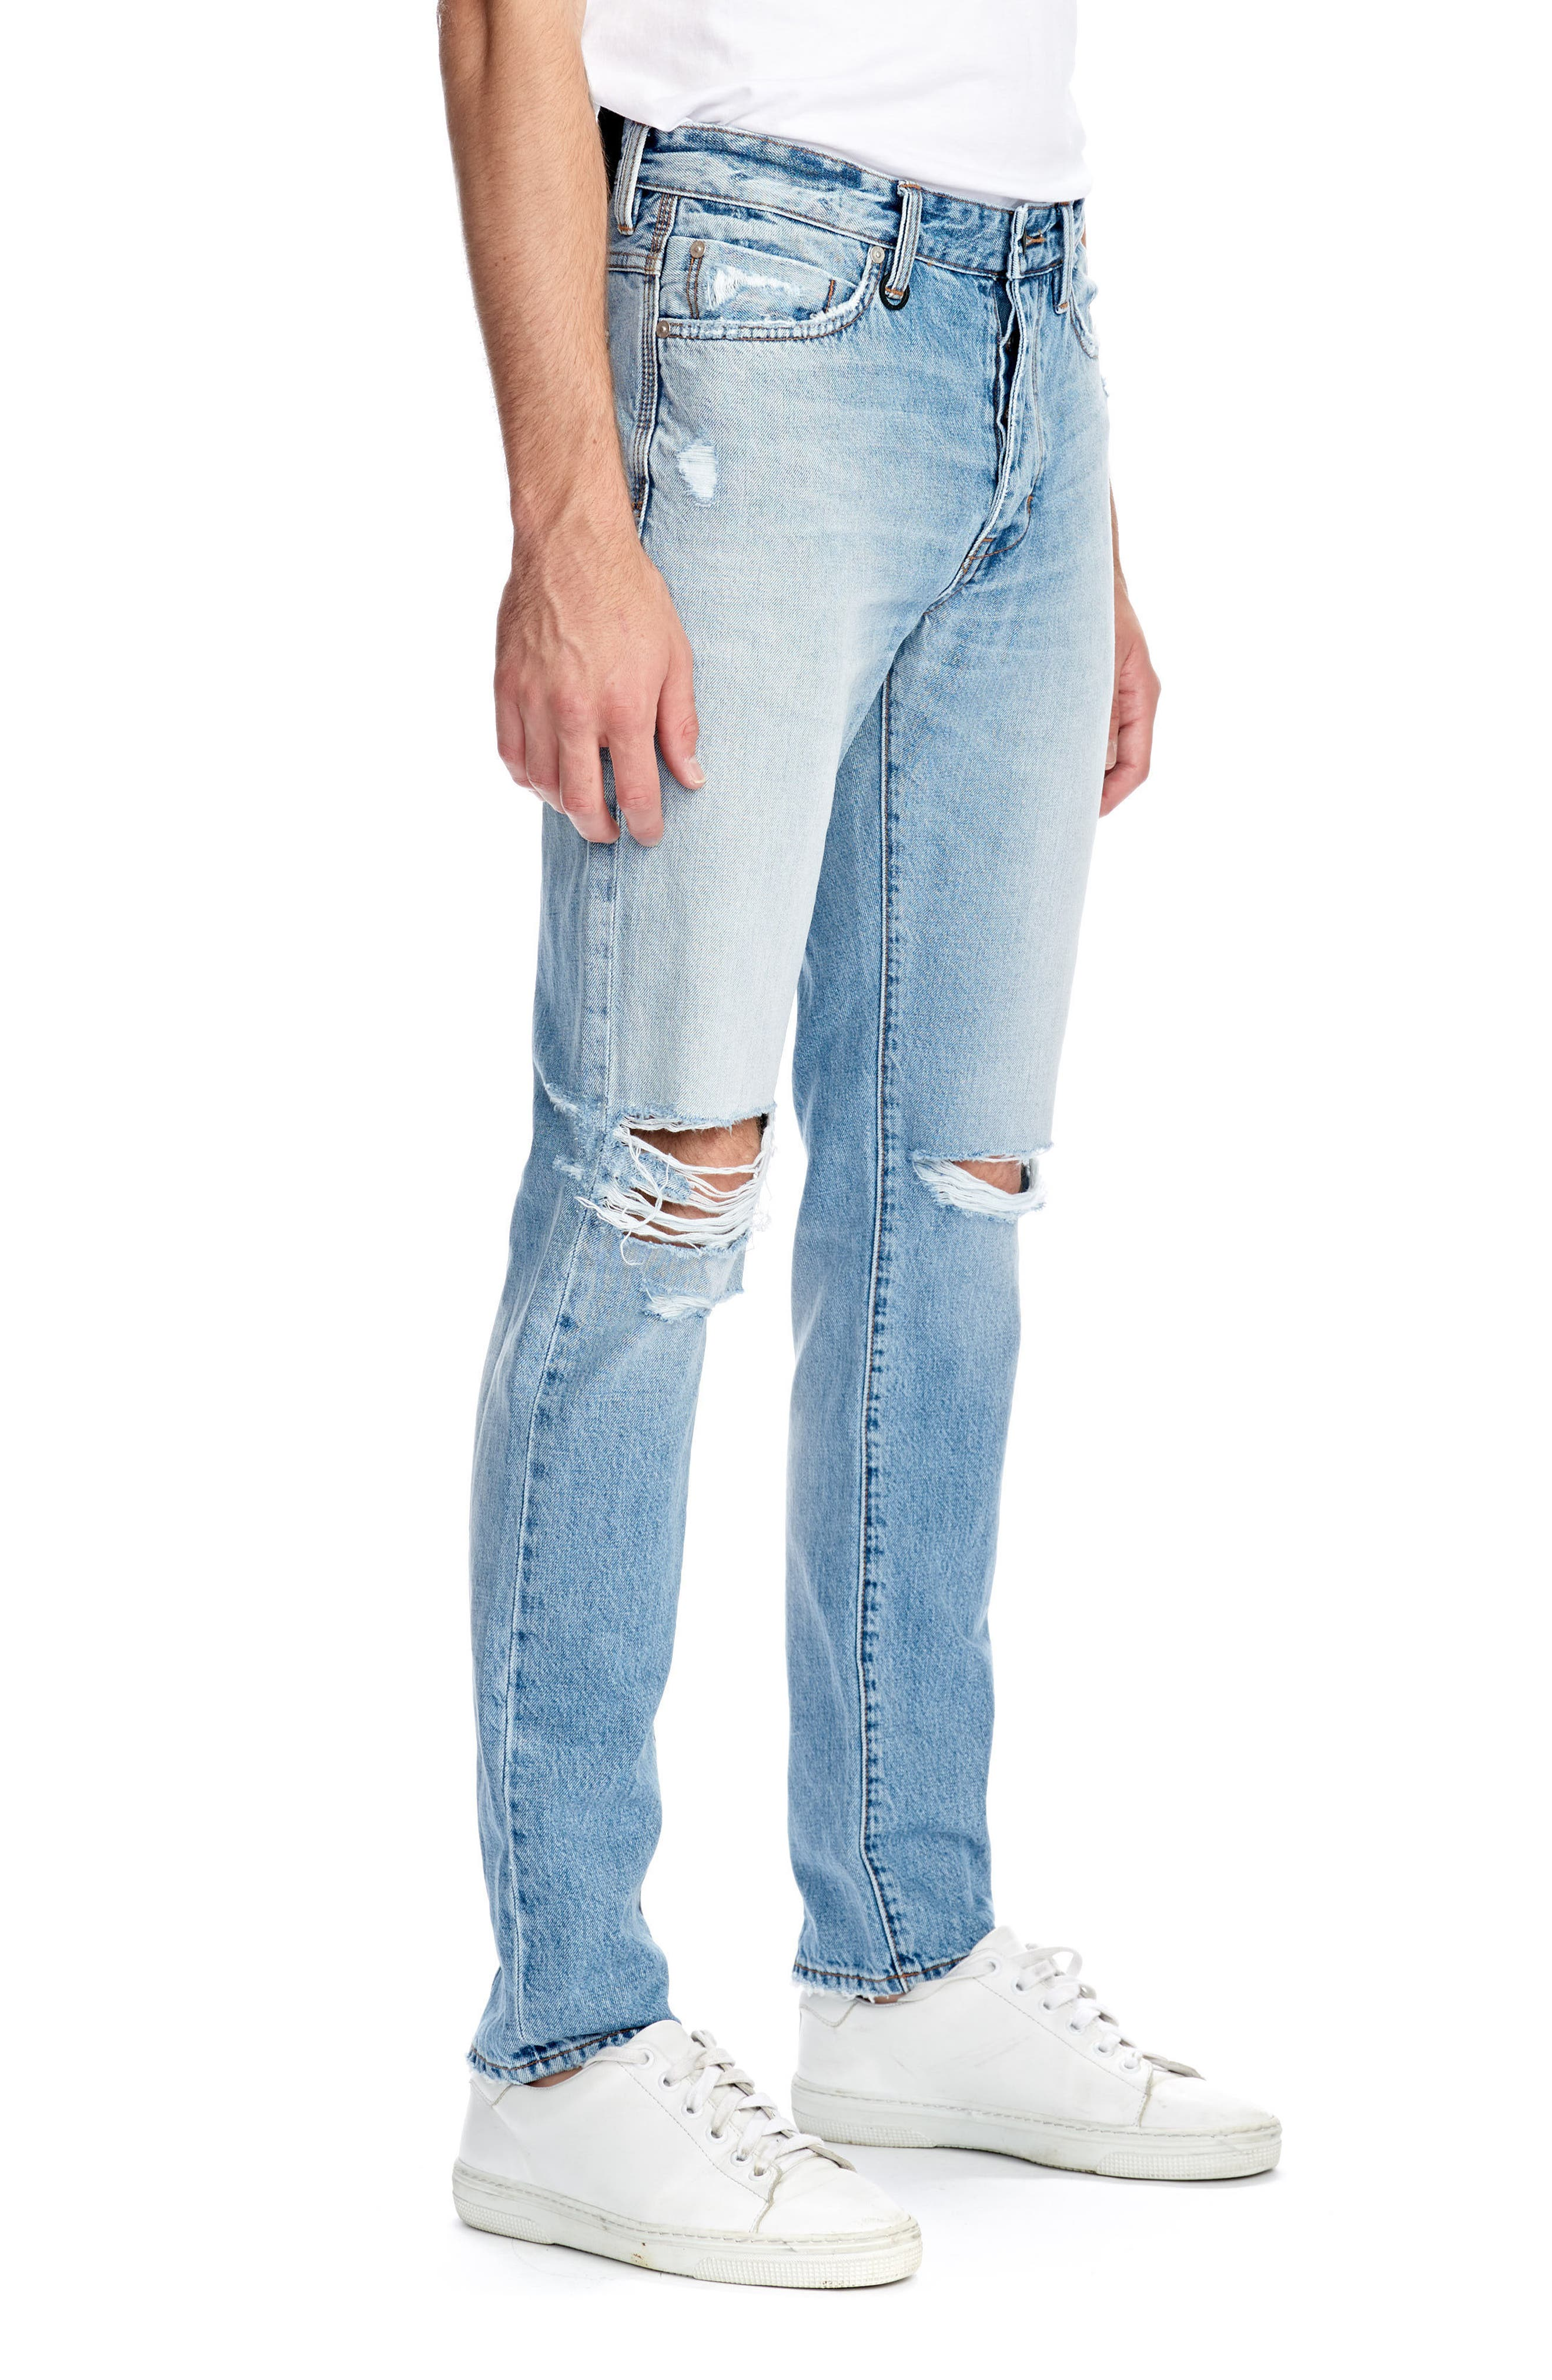 Lou Slim Fit Jeans,                             Alternate thumbnail 3, color,                             405